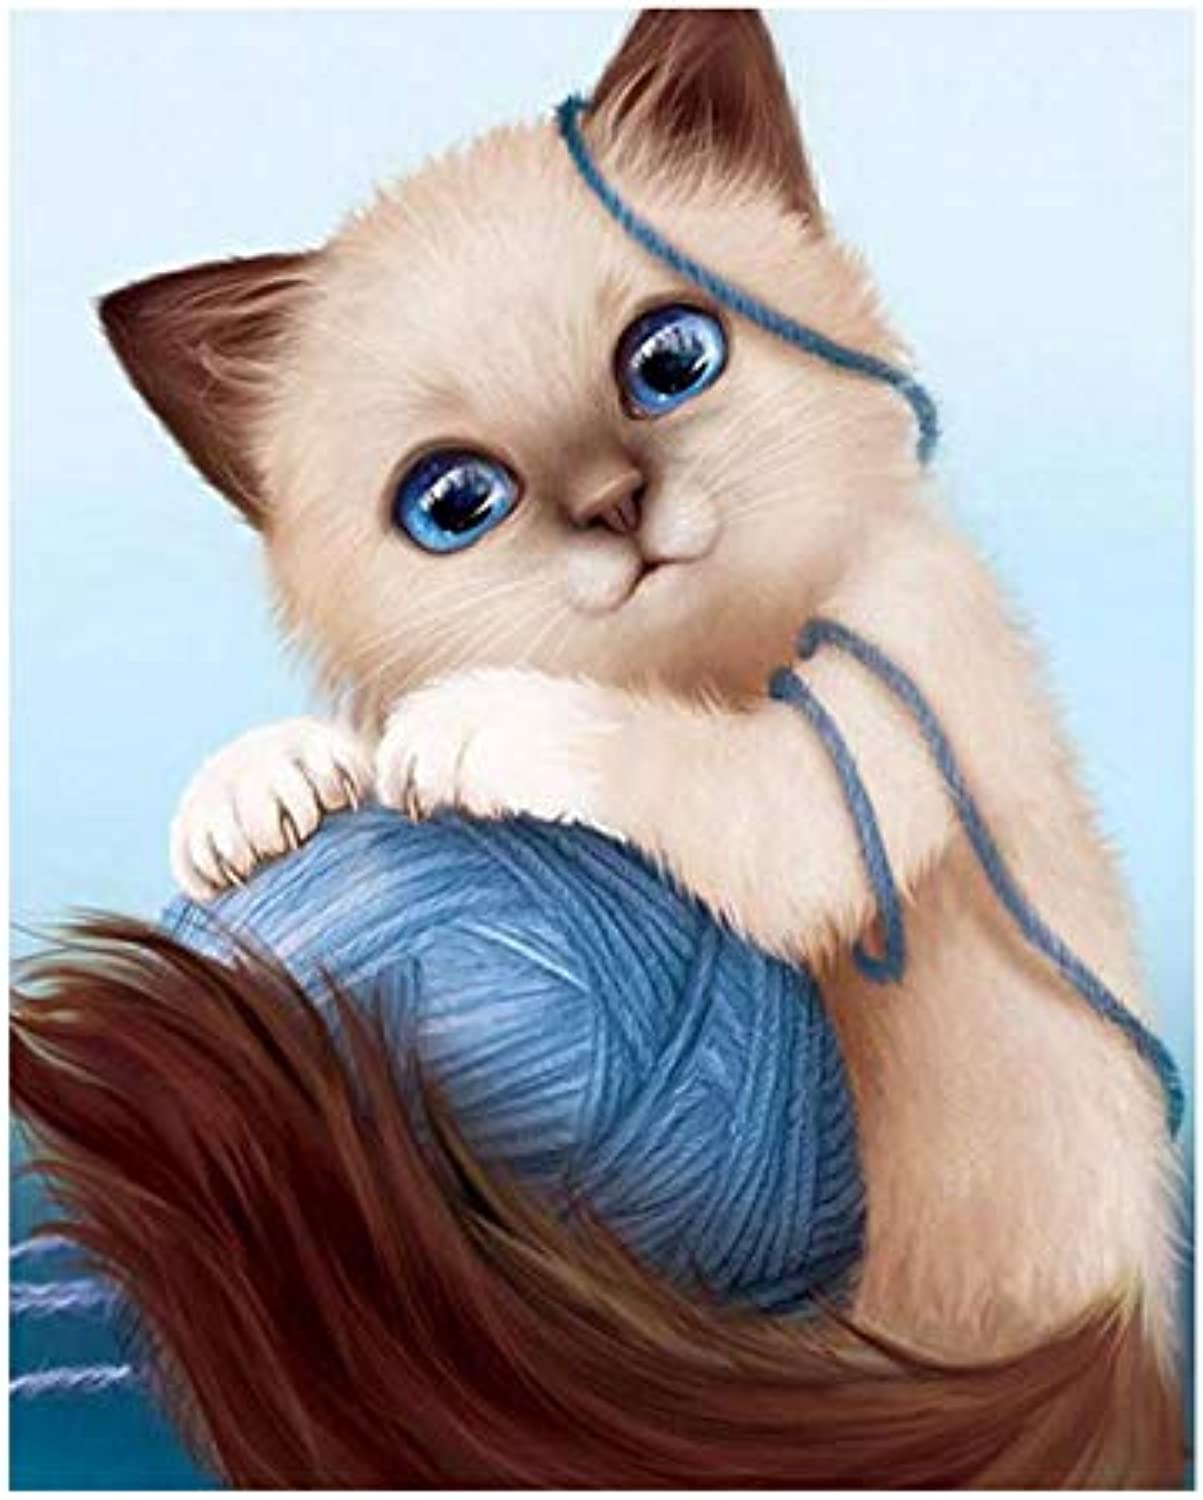 Crafts Paint Jobs By Digital Kit,Kids color By Number Kit With Tag, Playing Cats,16''X20''